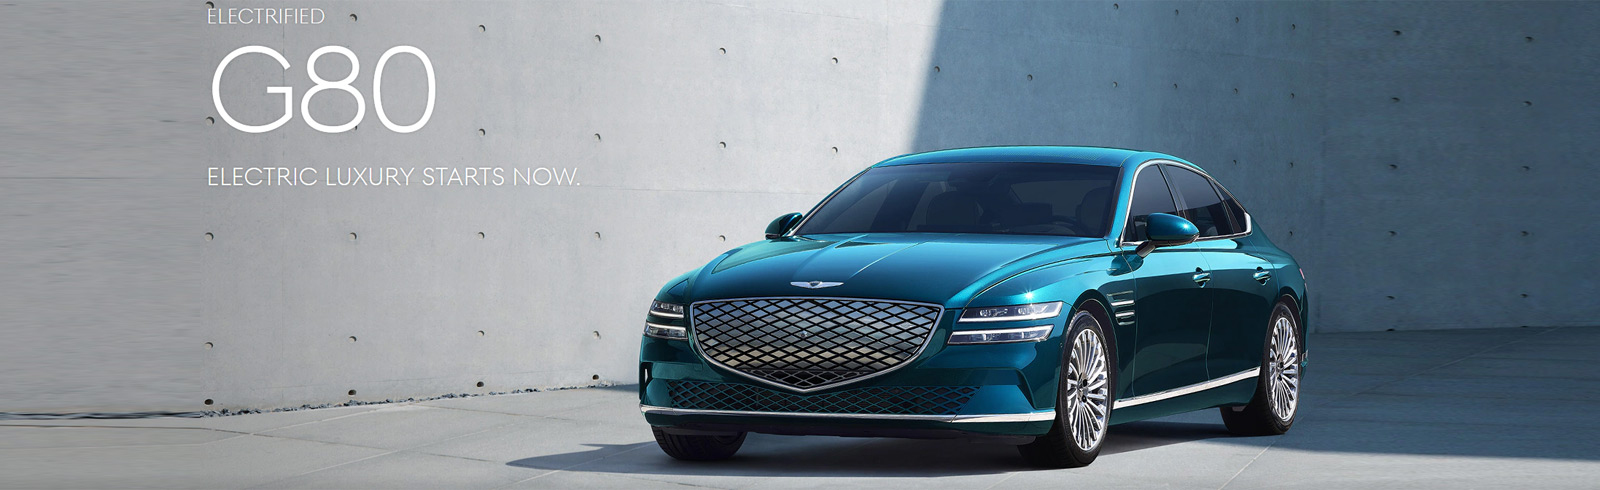 Genesis G80 Electrified is presented at Auto Shanghai 2021